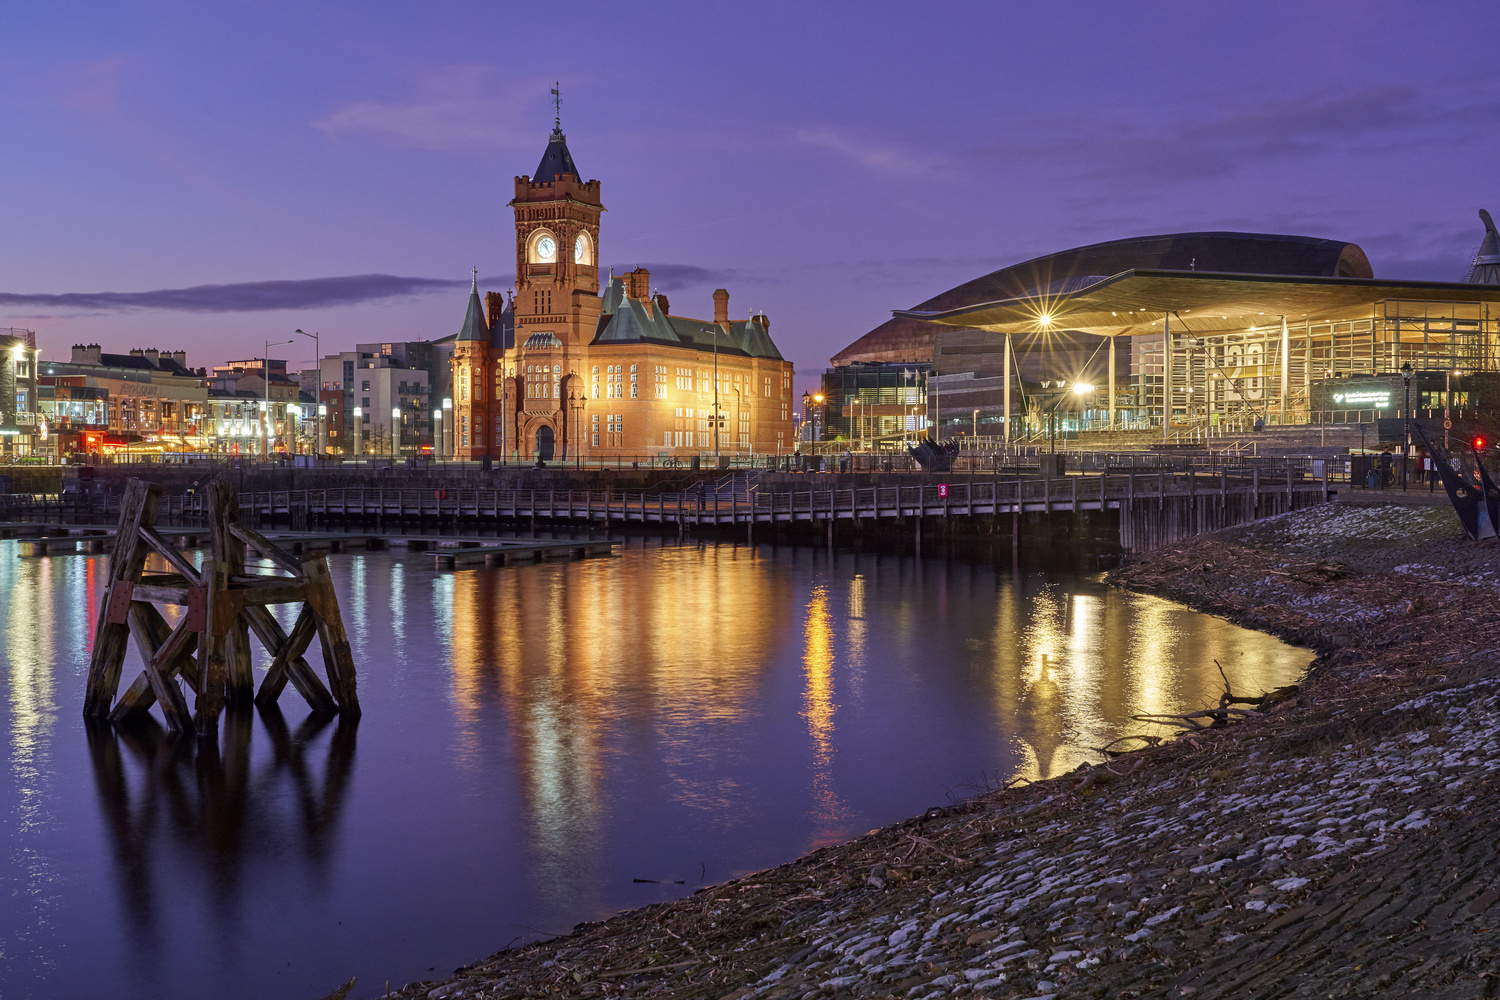 Cardiff Bay Evening by Richard Downs